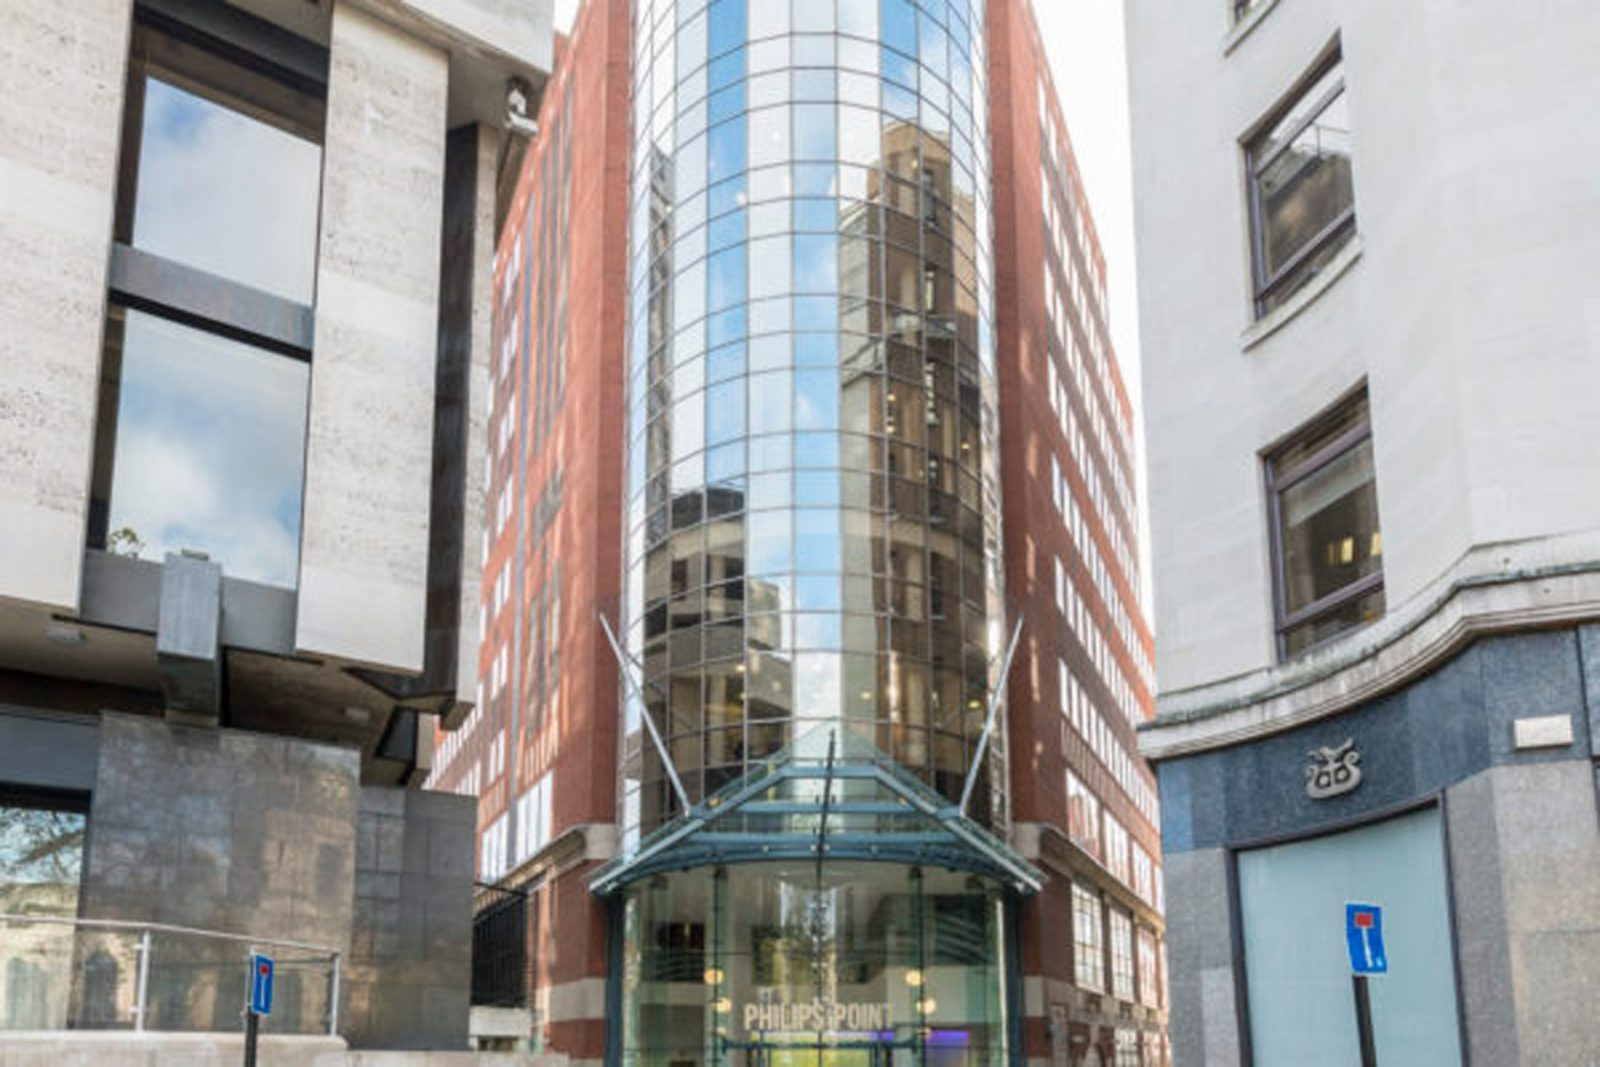 st phillips point birmingham offices refurb interiors architects jersey architecture1